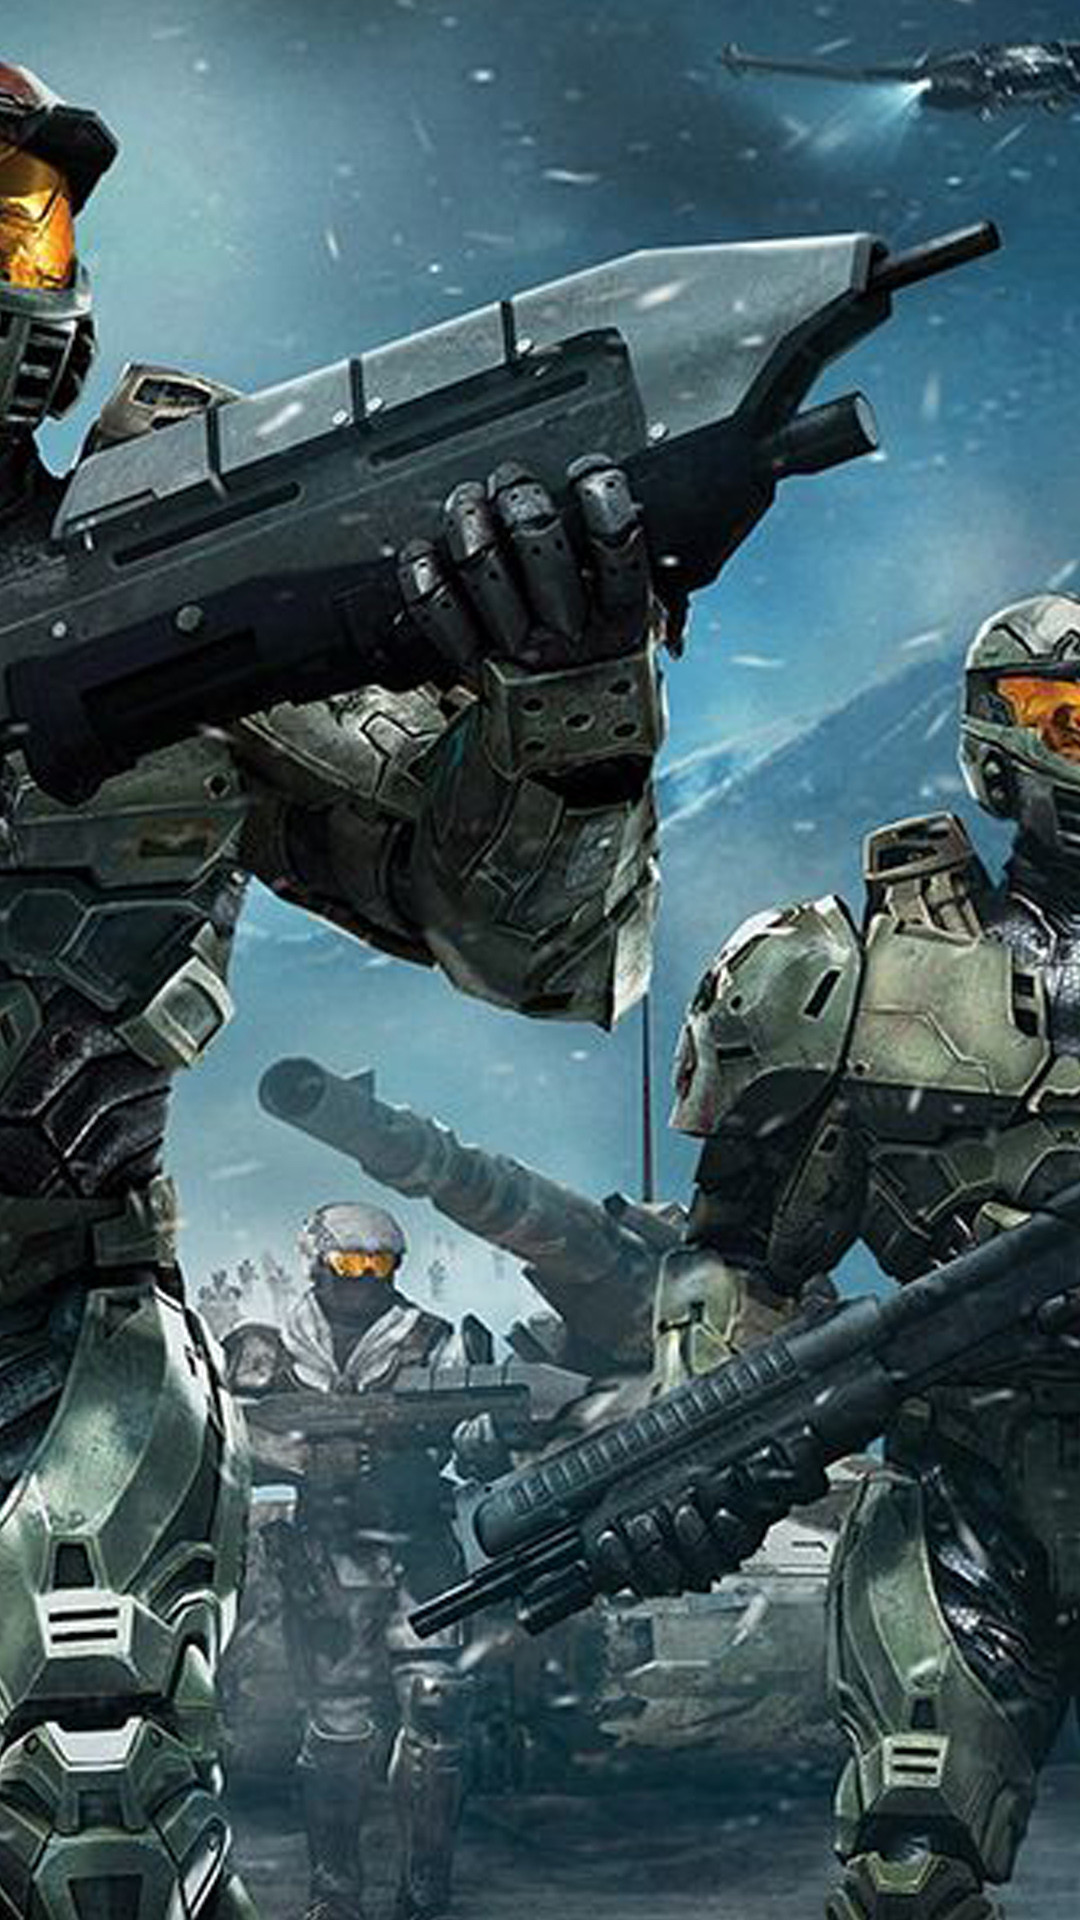 1080x1920 Halo Wars 2 iphone wallpaper Pinterest Halo Wars 2 iphone wallpaper ios 9